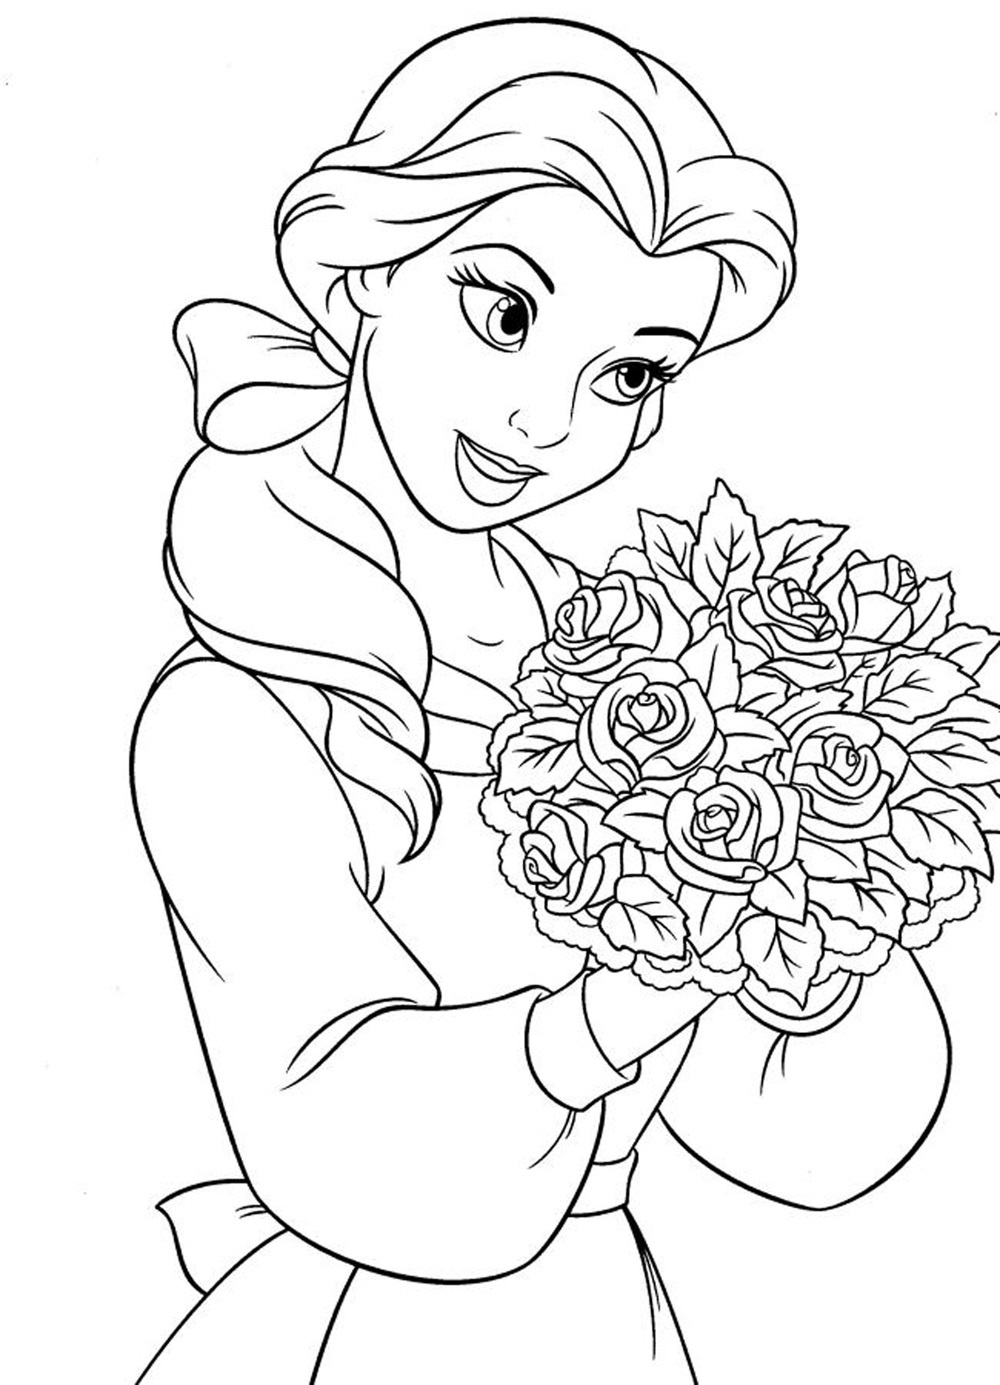 Disney Printable Coloring Pages Girls